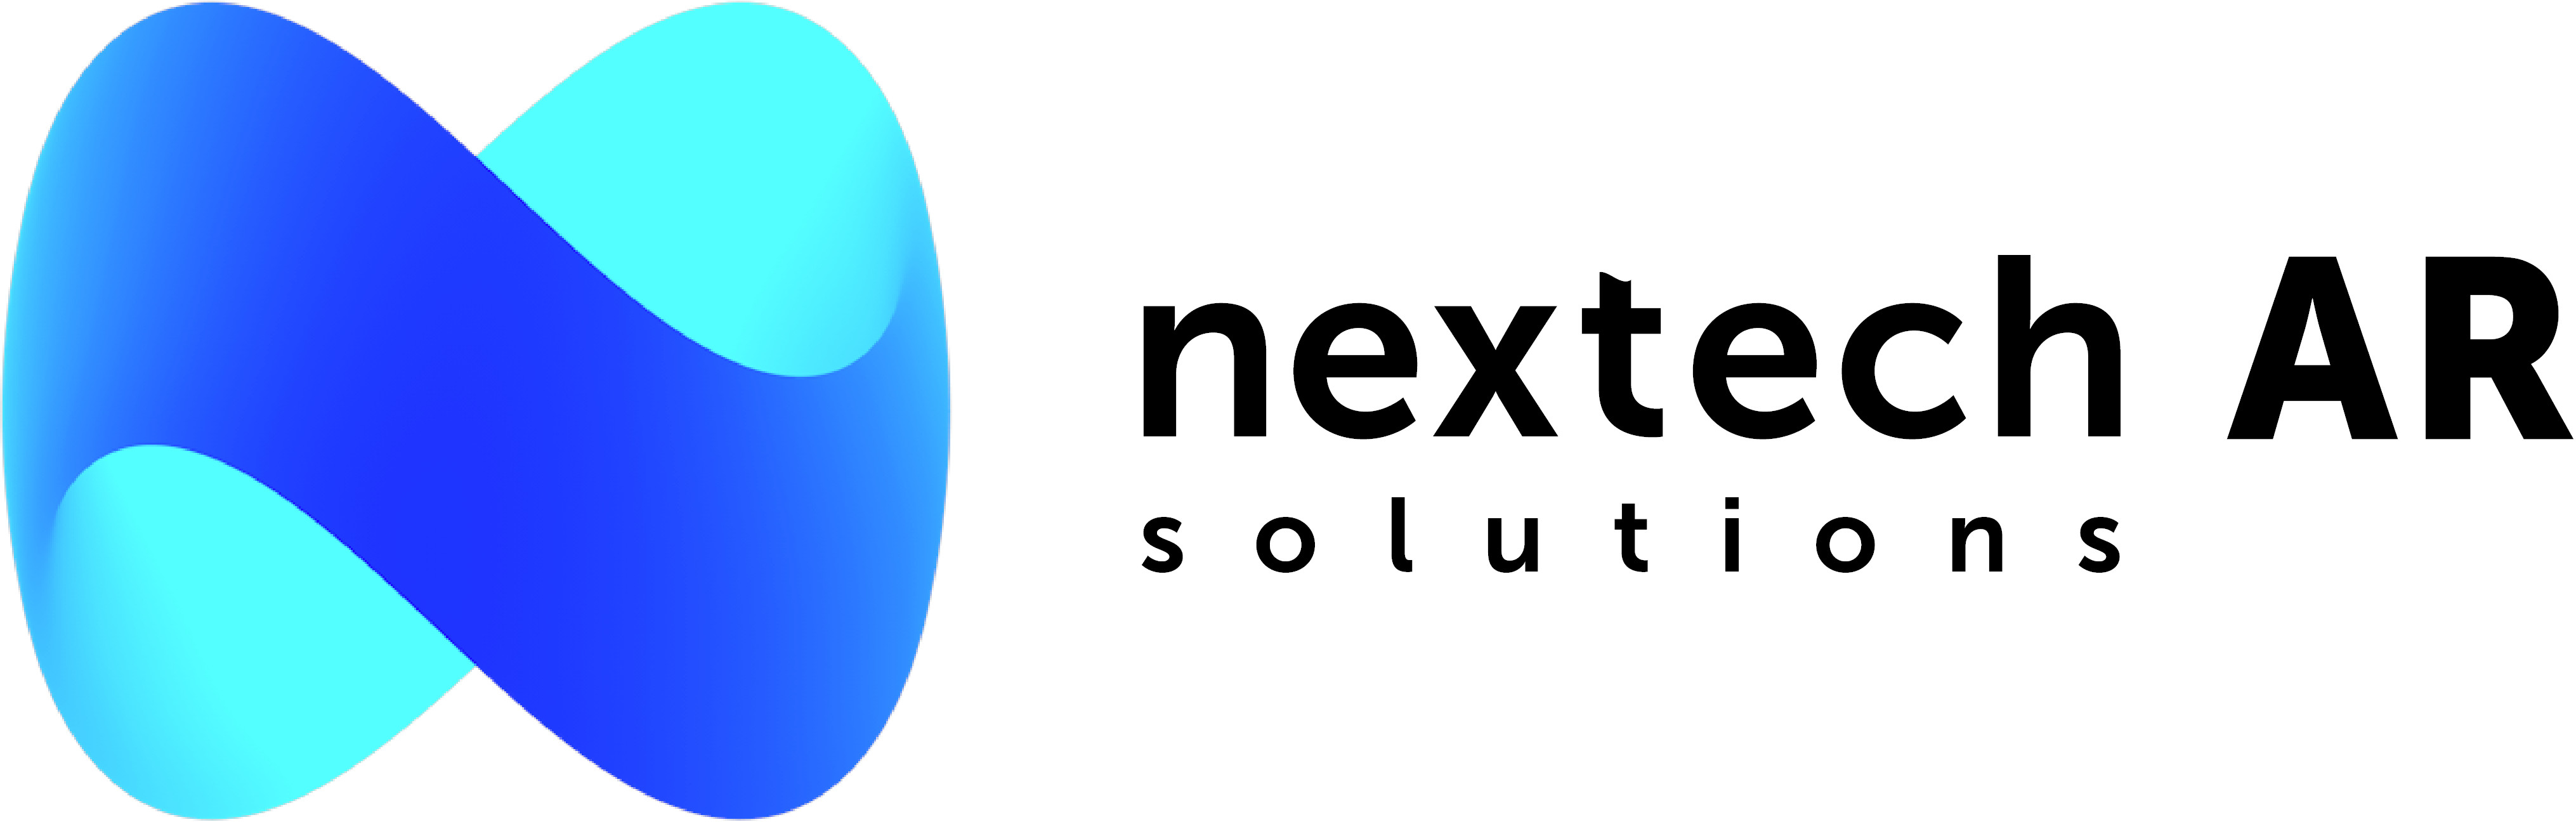 Nextech AR Launches Major Platform Upgrade with Standardized AI Chat Features to Enhance Virtual Experience Platform